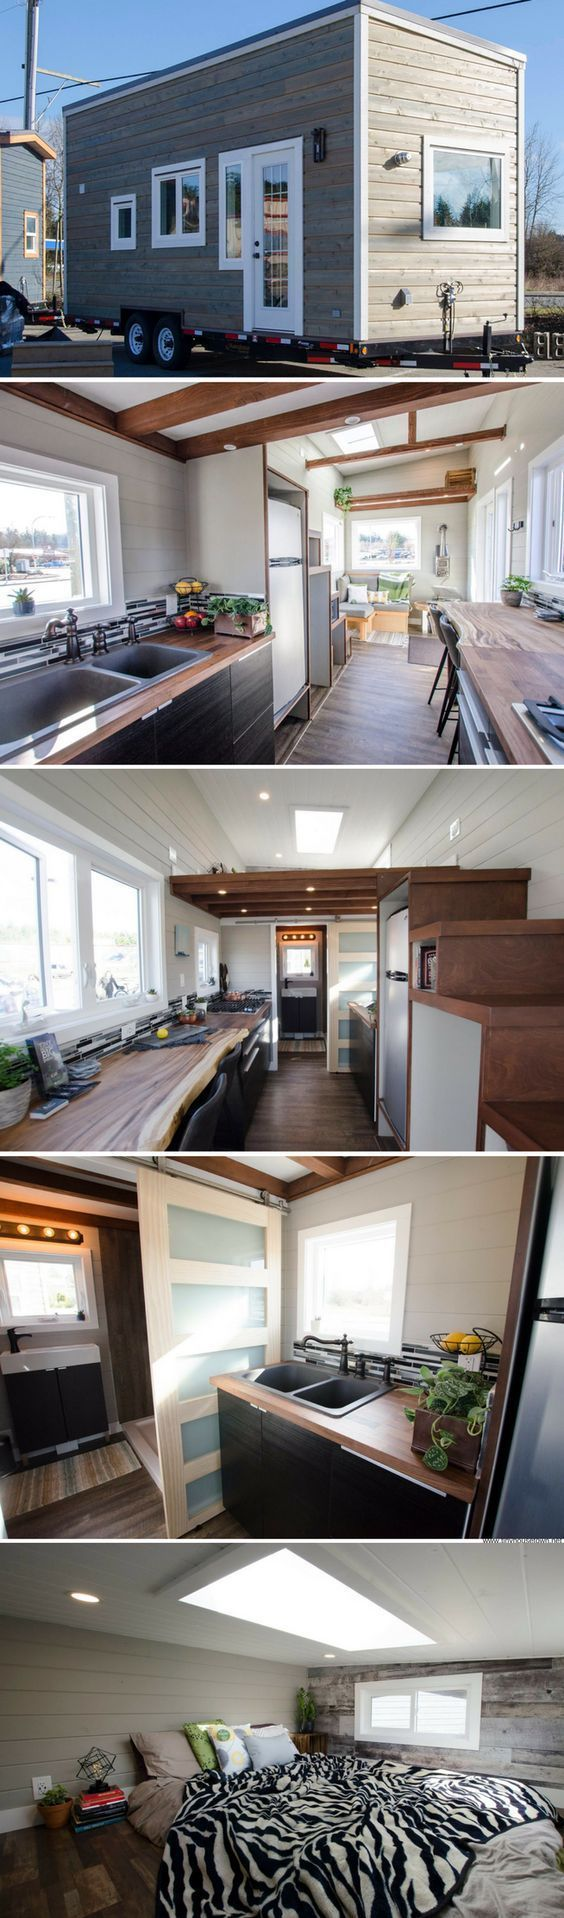 23 Best Tiny House Living